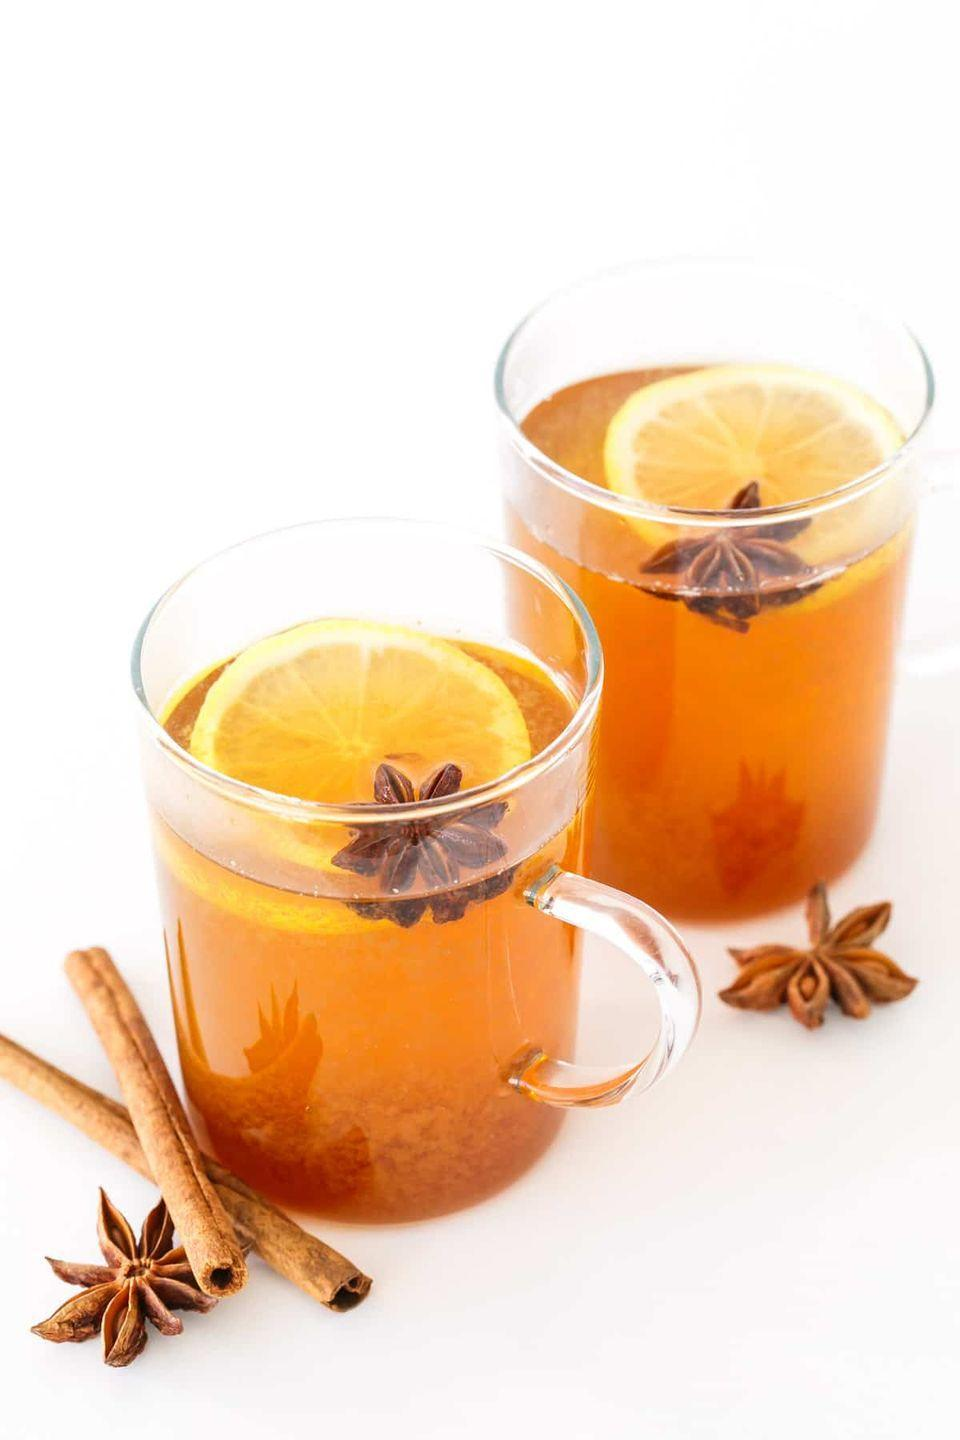 """<p>This warm drink is like comfort in a glass, thanks to a blend of chamomile tea, honey, lemon, and spices. (And, oh yeah, Bourbon helps, too.) </p><p><a class=""""link rapid-noclick-resp"""" href=""""https://www.loveandoliveoil.com/2016/12/spiced-chamomile-hot-toddy.html"""" rel=""""nofollow noopener"""" target=""""_blank"""" data-ylk=""""slk:GET THE RECIPE"""">GET THE RECIPE</a></p>"""